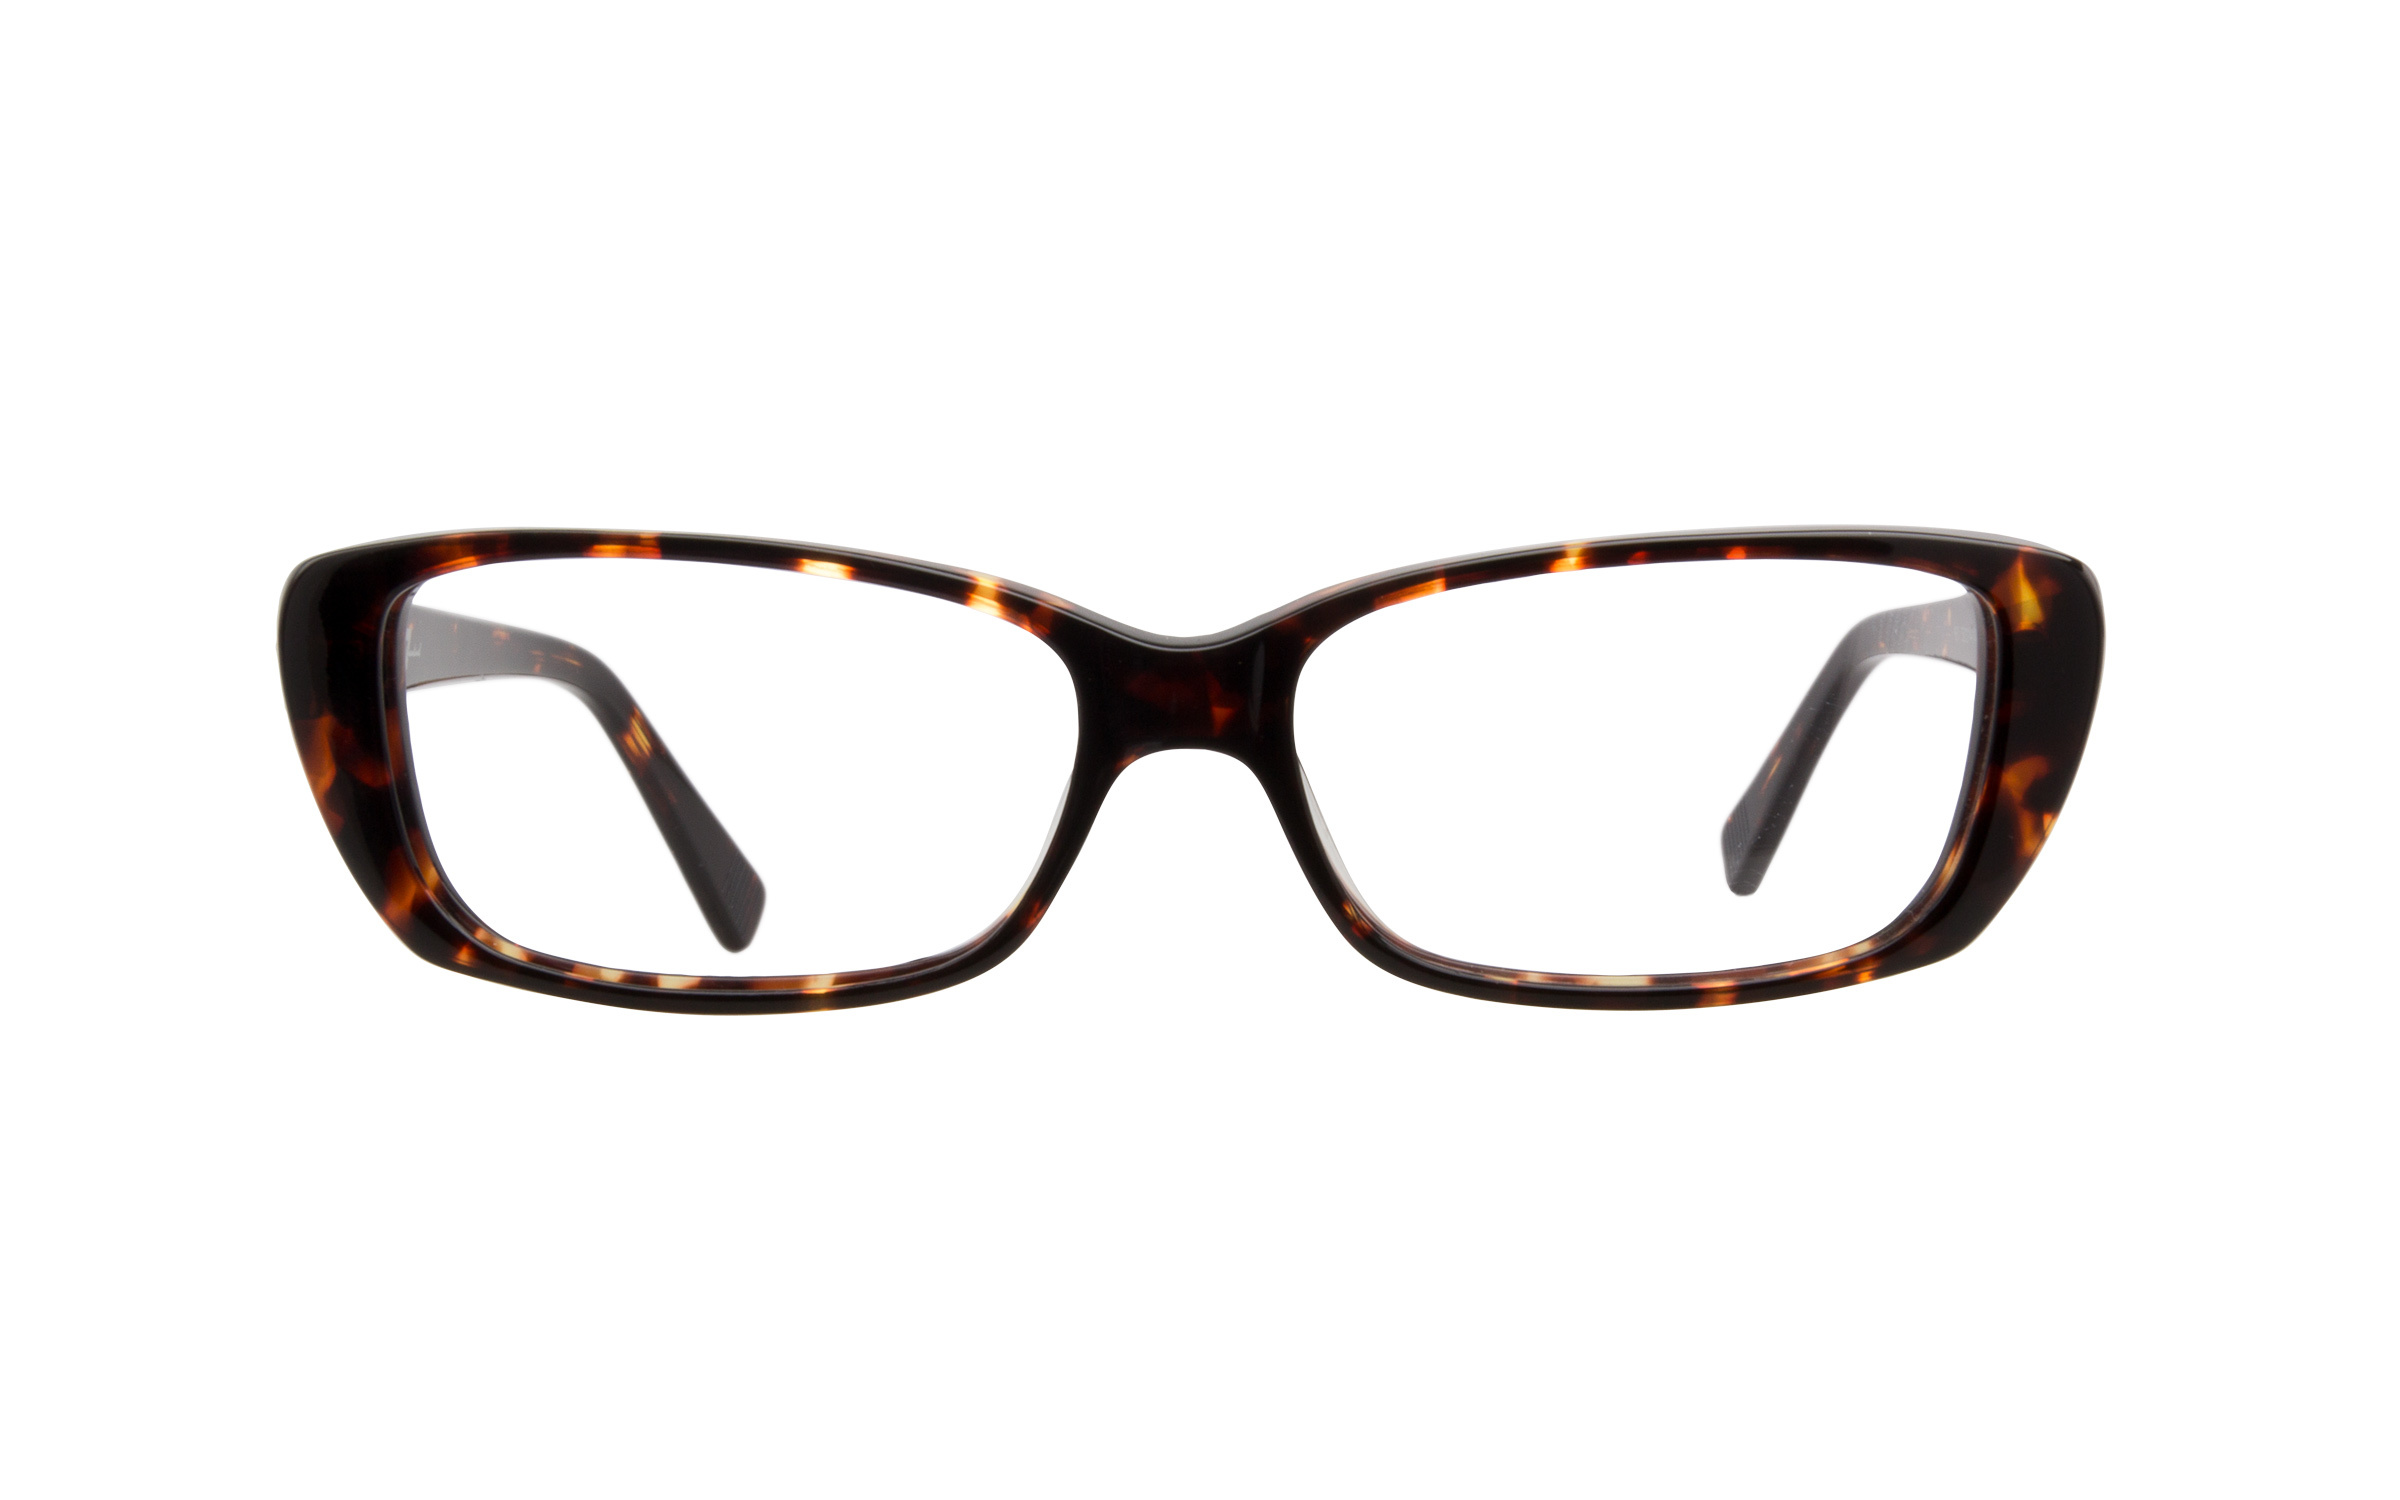 7 For All Mankind 651 Tortoise eyeglasses have a chic premium designer feel utilizing modern proportions and trendy materials to turn a classic shape into something truly special. The rectangle shape has a slight cateye effect for a retro-infused twist which is emphasized beautifully by glossy tortoise acetate and subtle gold 7 For All Mankind logos in unexpected places.